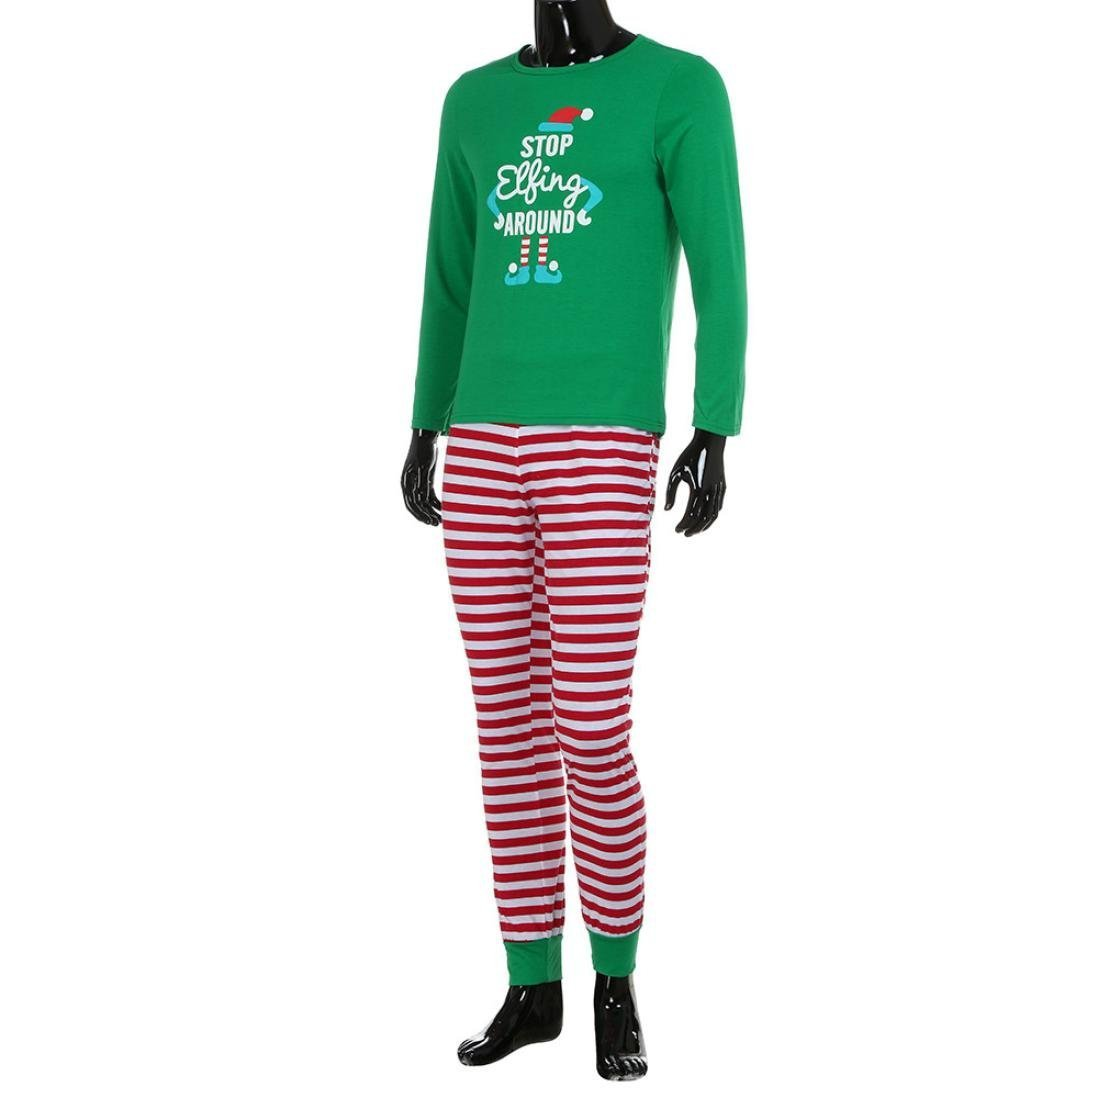 99efeb7f06 Amazon.com  Yunchuang Matching Family PJS Christmas Entire Family Jammies  Cotton Pajamas Sets Best Kids Sleepwear Xmas A6  Clothing